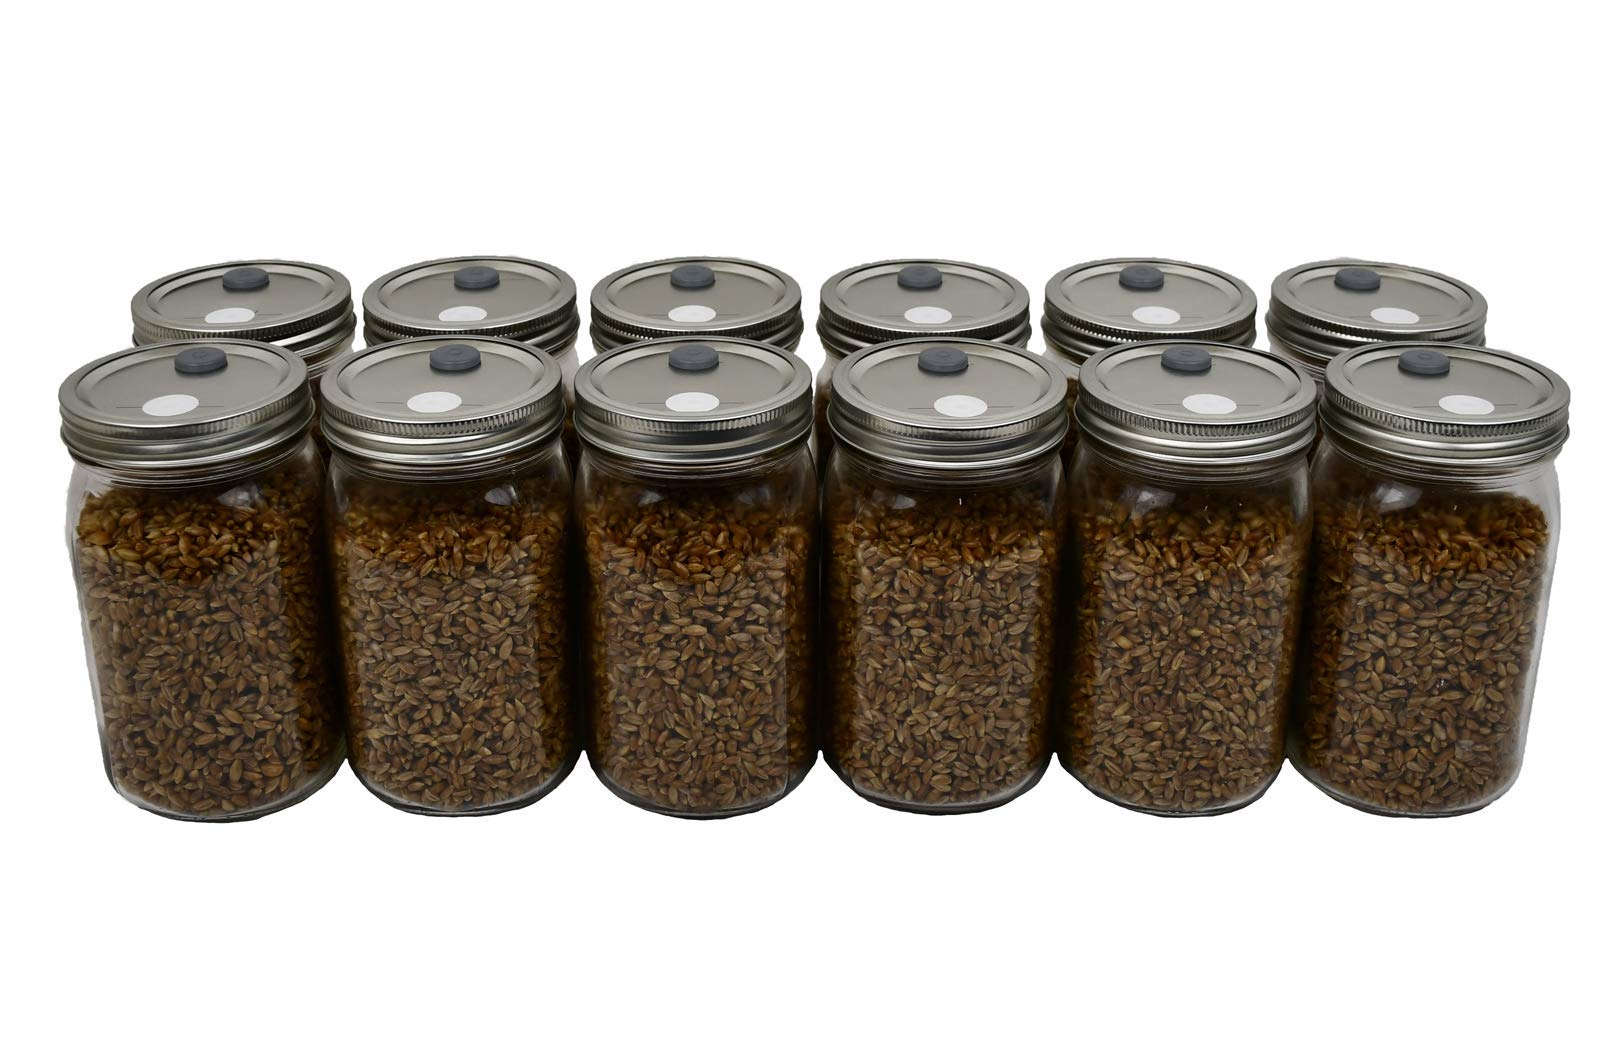 Sterilized Rye Berry Mushroom Substrate in Injectable Jars (12 Count)